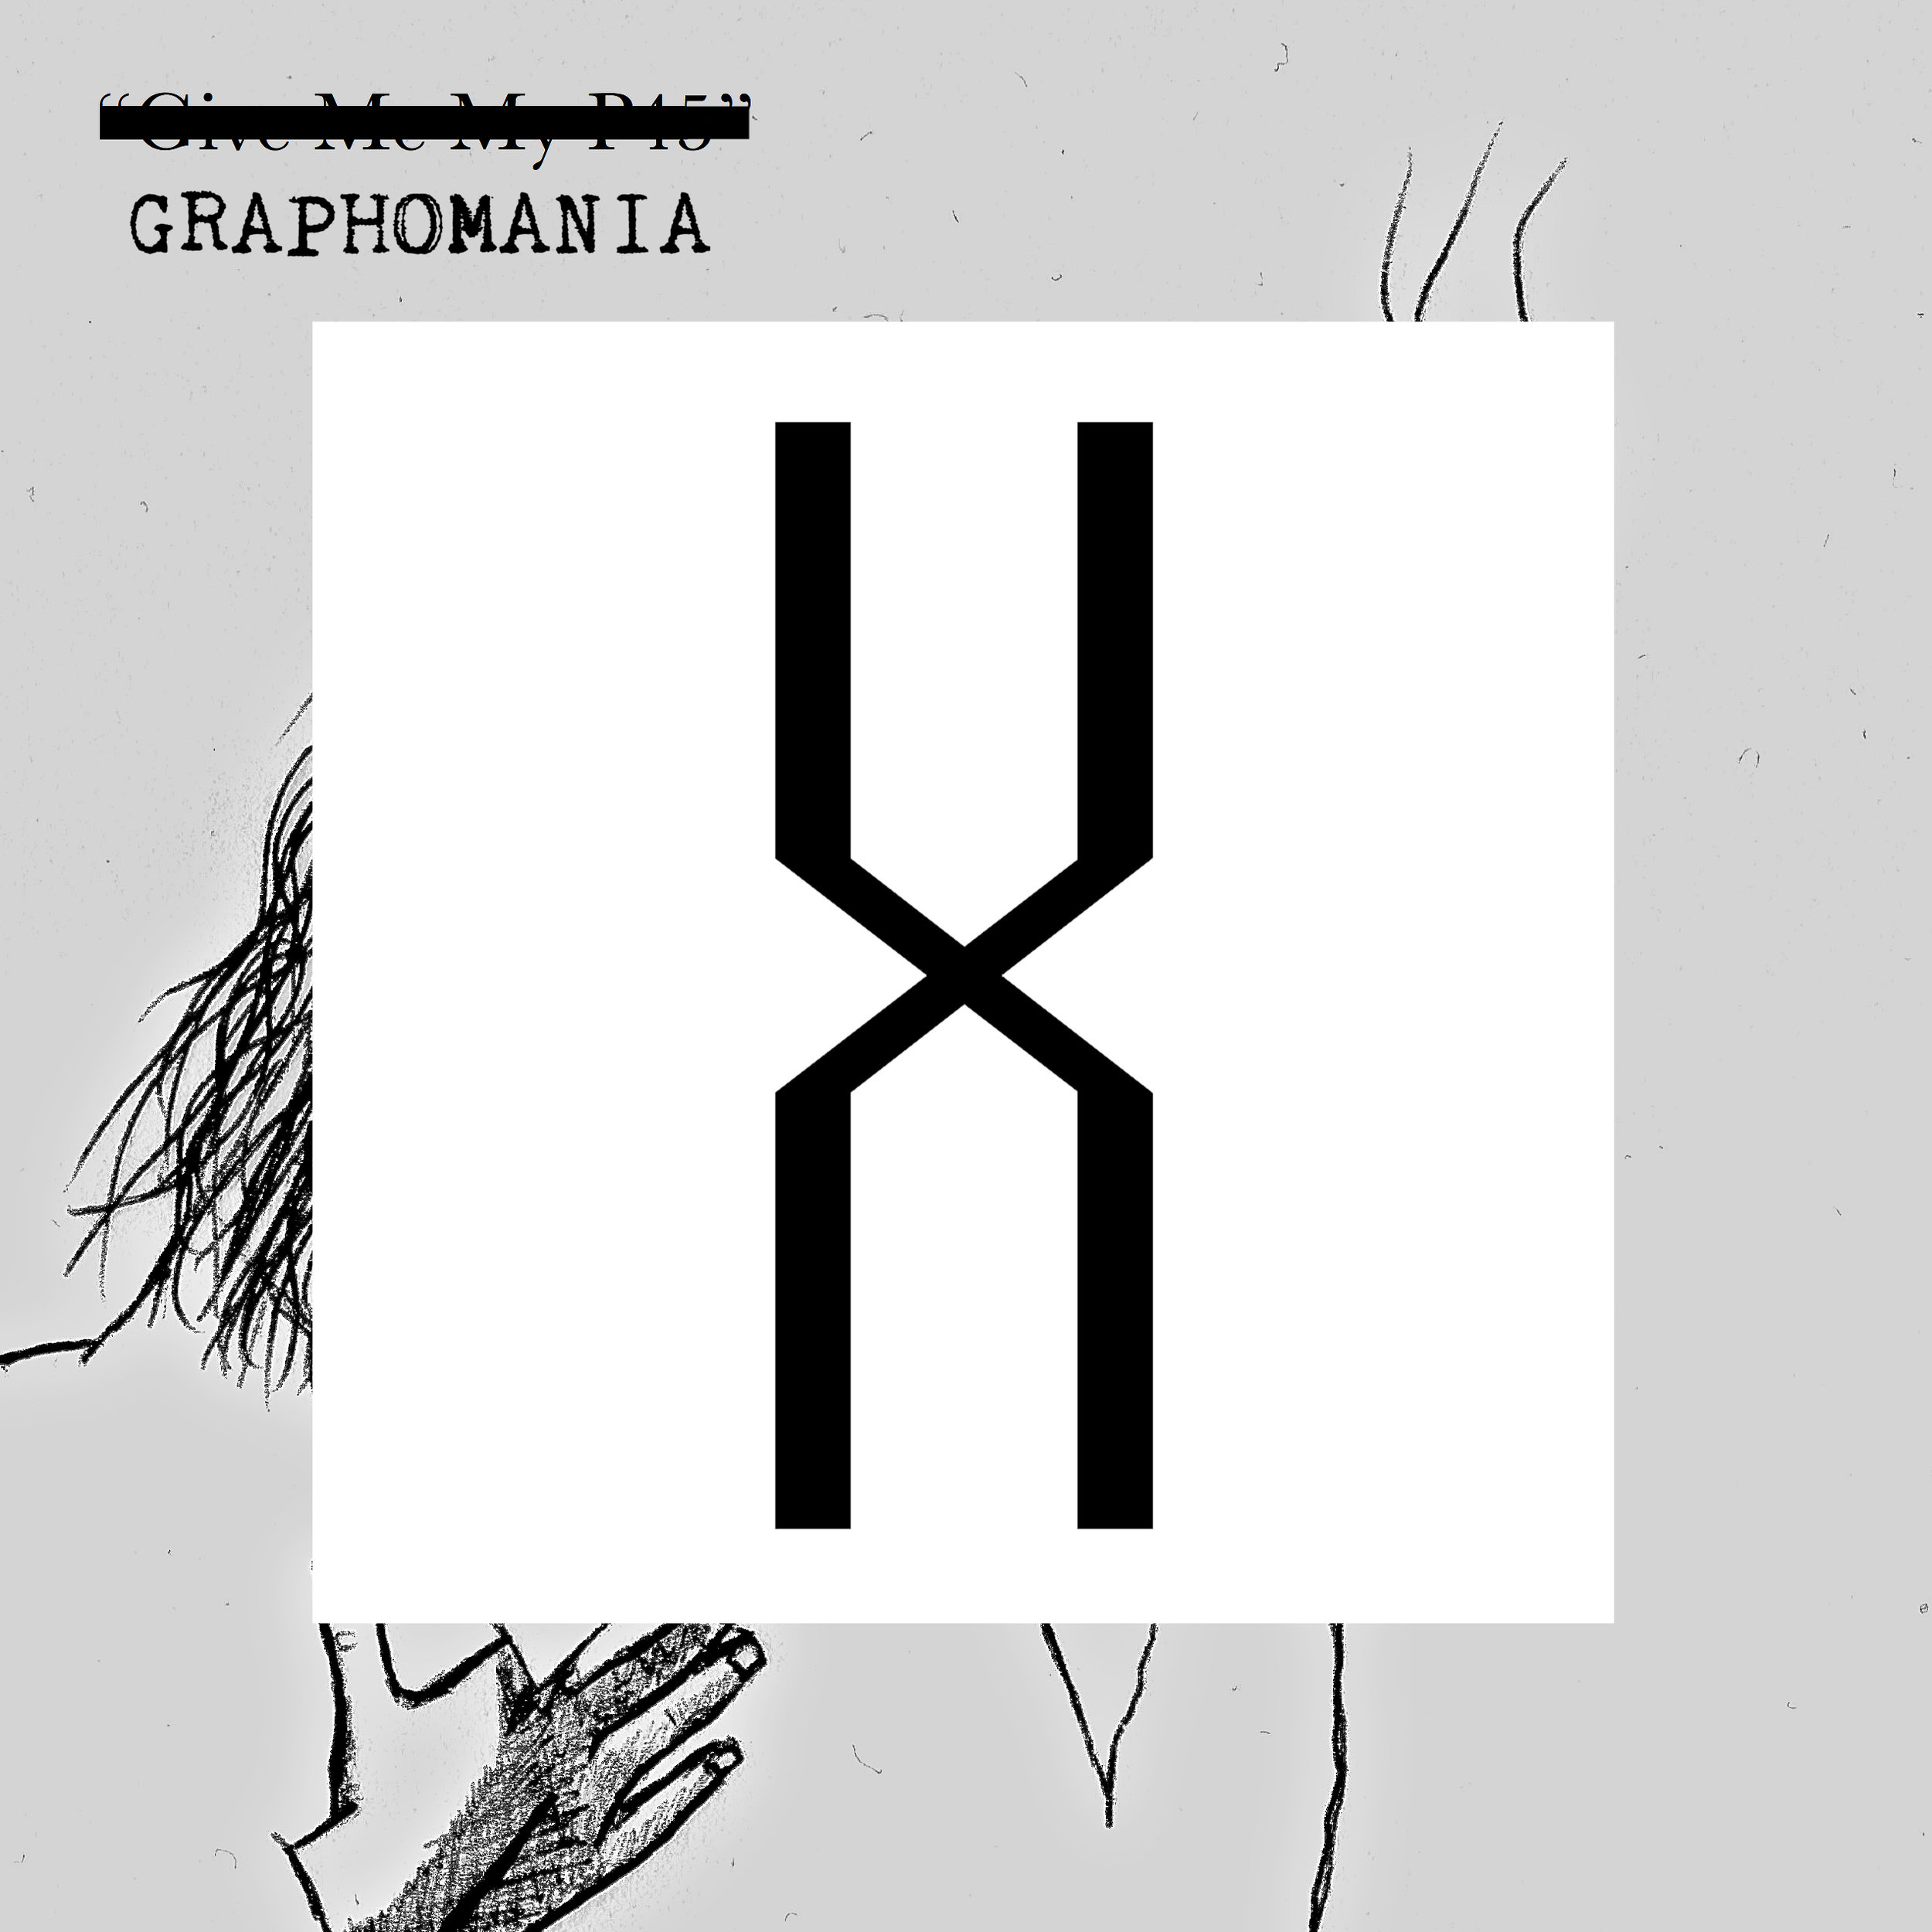 GRAPHOMANIA - Released as the second single from 'AUSLANDER' in March of 2018, 'GRAPHOMANIA''s release was supported by BRAIN APE's first European set of live dates ending in a hometown release show in London's 'Water Rats' venue.The single was also used by SCRATCH ROCK RECORDS to launch BRAIN APE's back-catalogue, and that of the other artists on the label, on all major streaming platforms.